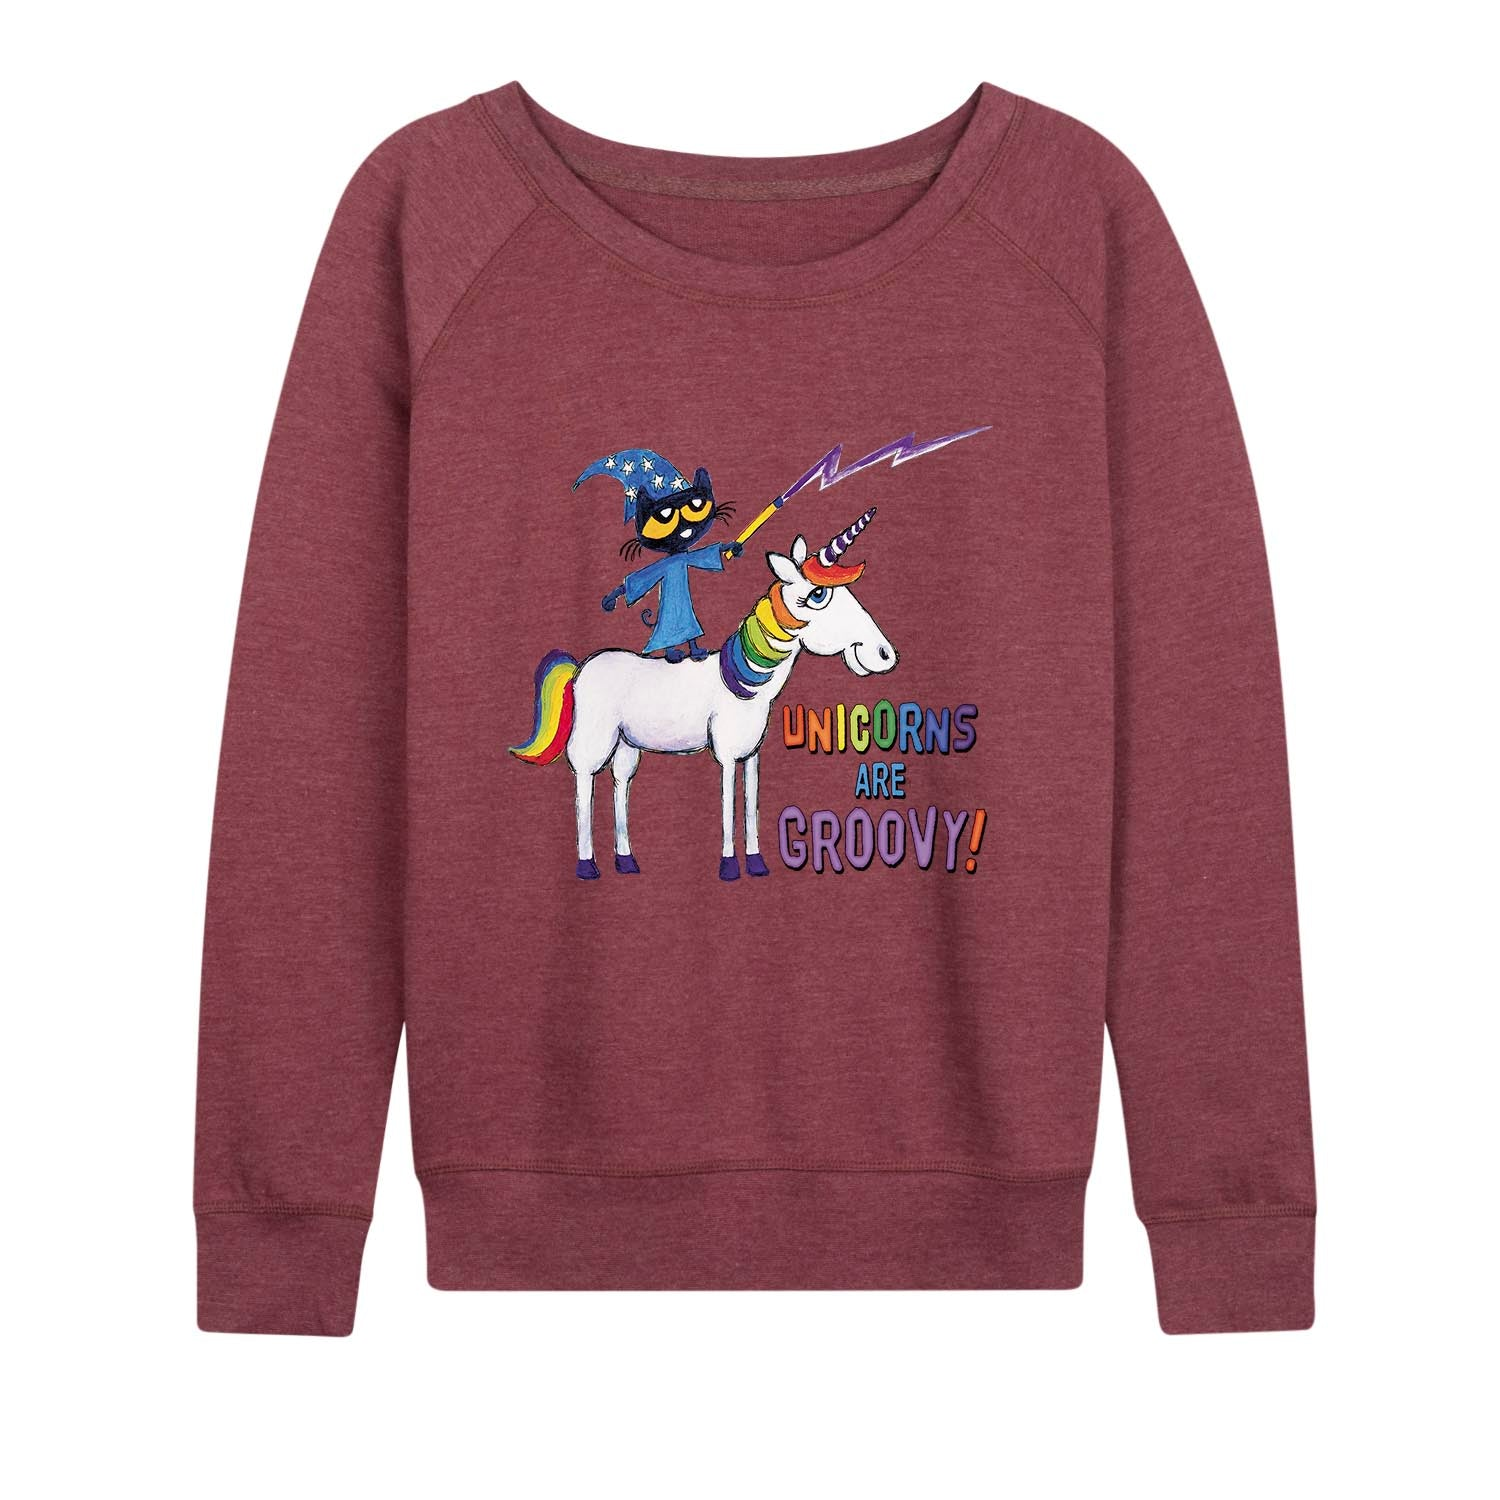 Pete The Cat™ - Unicorns Are Groovy - Women's Slouchy